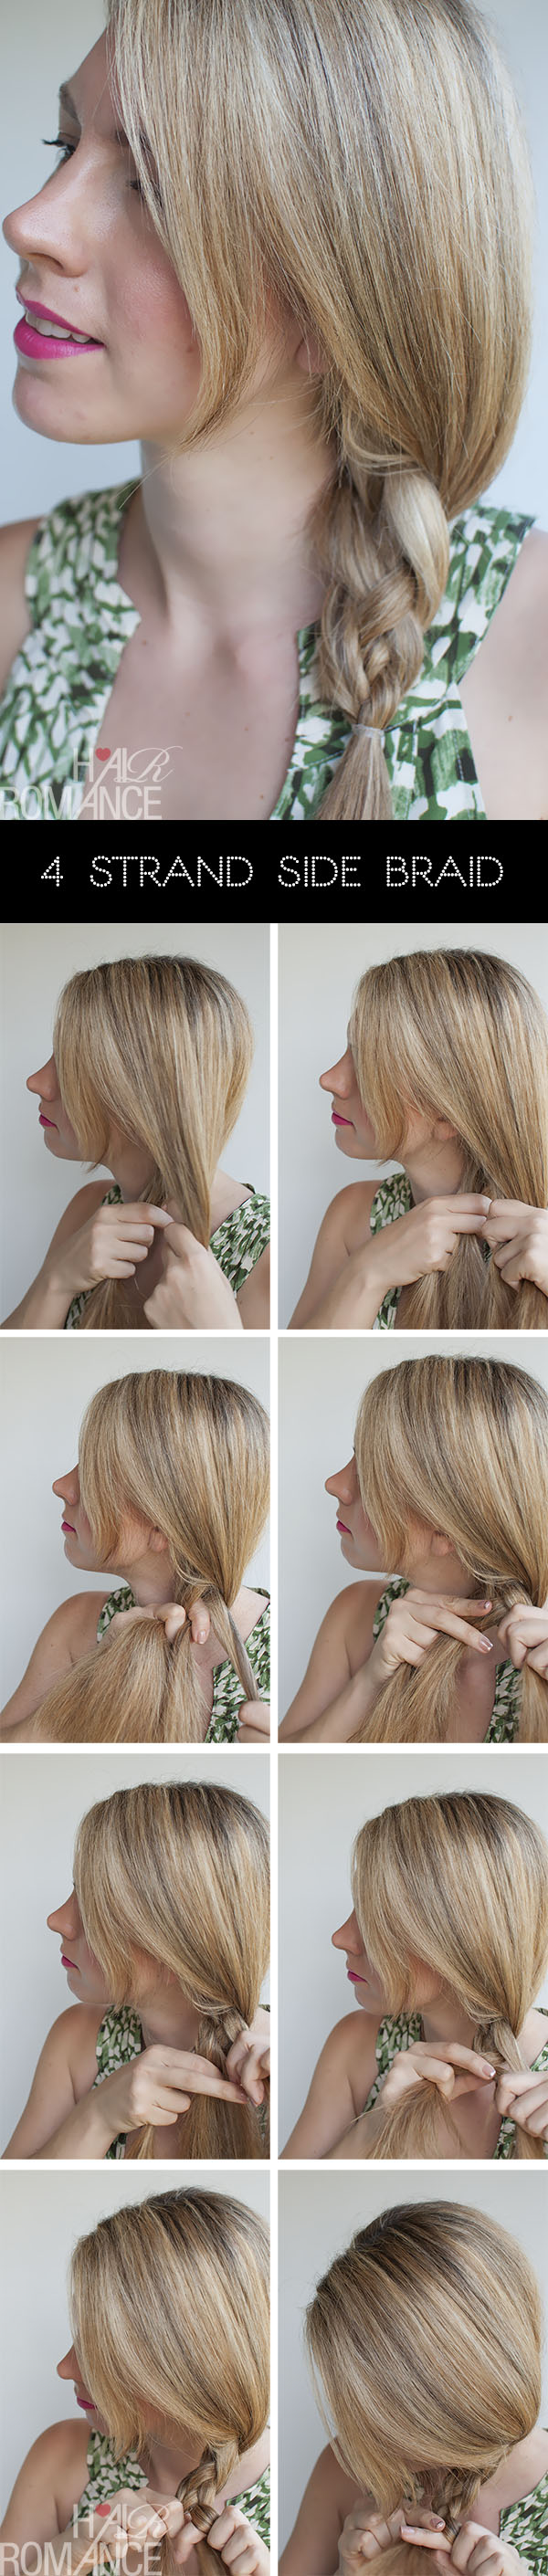 How To Braid Your Own Hair Step By Step Instructions €� Images Free How To  French